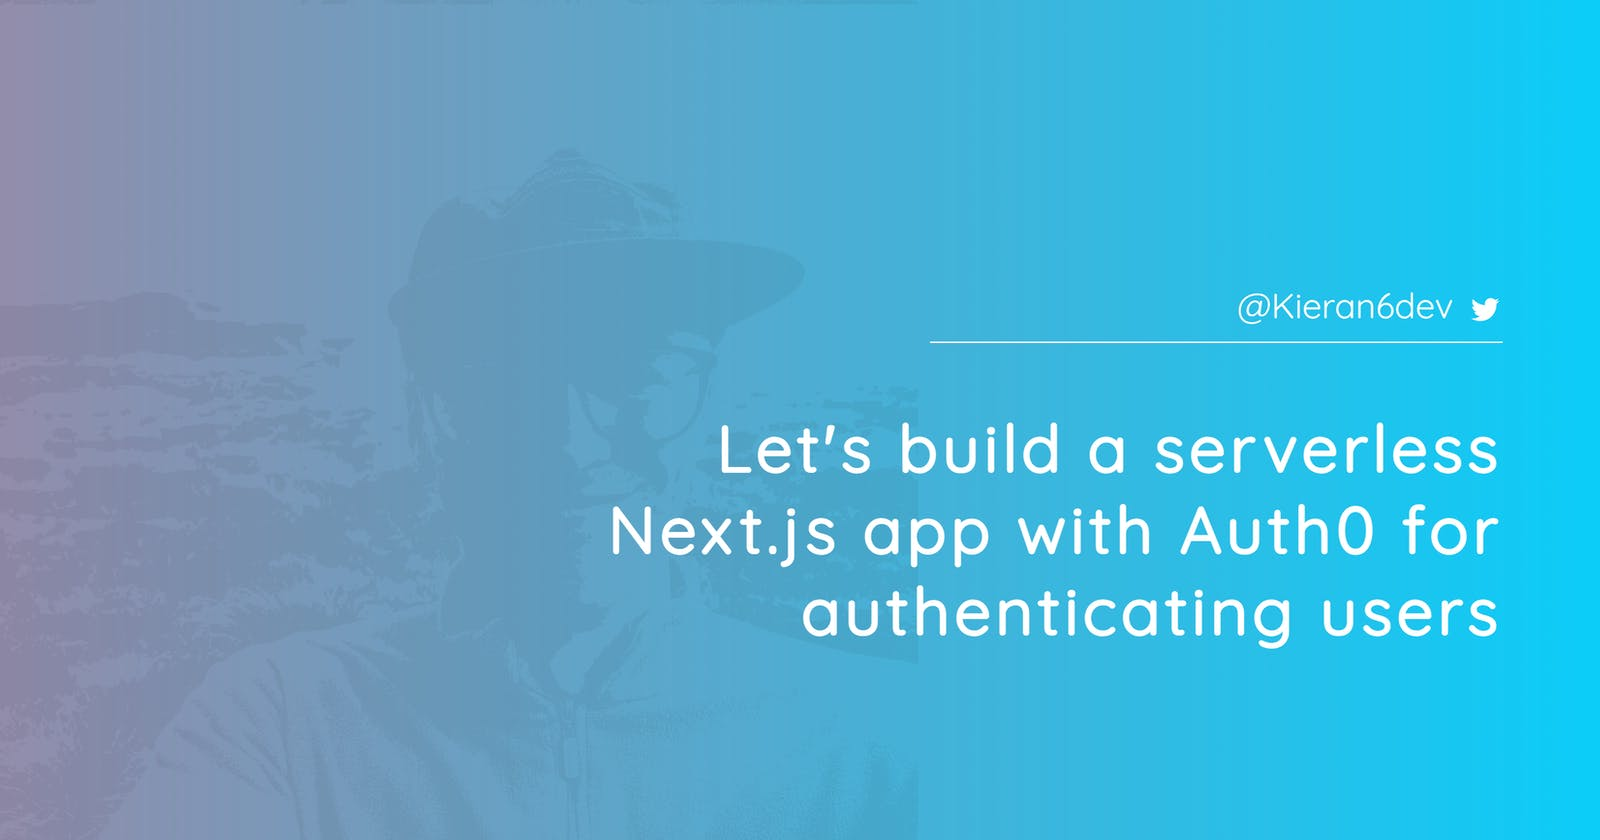 Let's build a serverless Next.js app with Auth0 for authenticating users